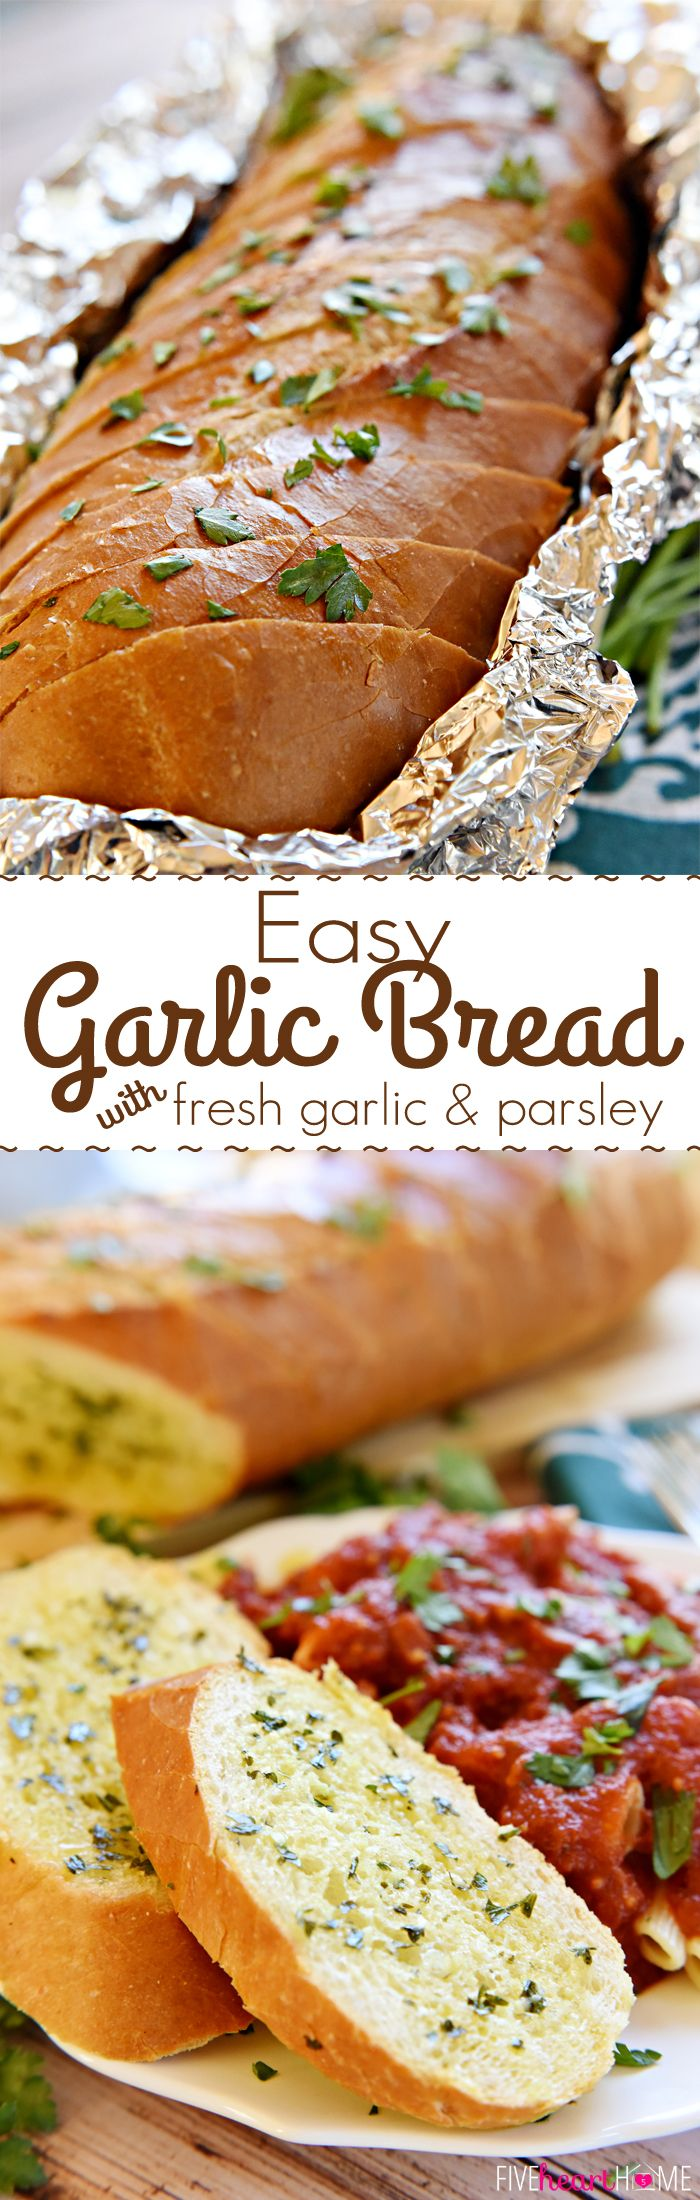 Garlic Bread with Fresh Garlic & Parsley #GarlicBread FoodBlogs.com